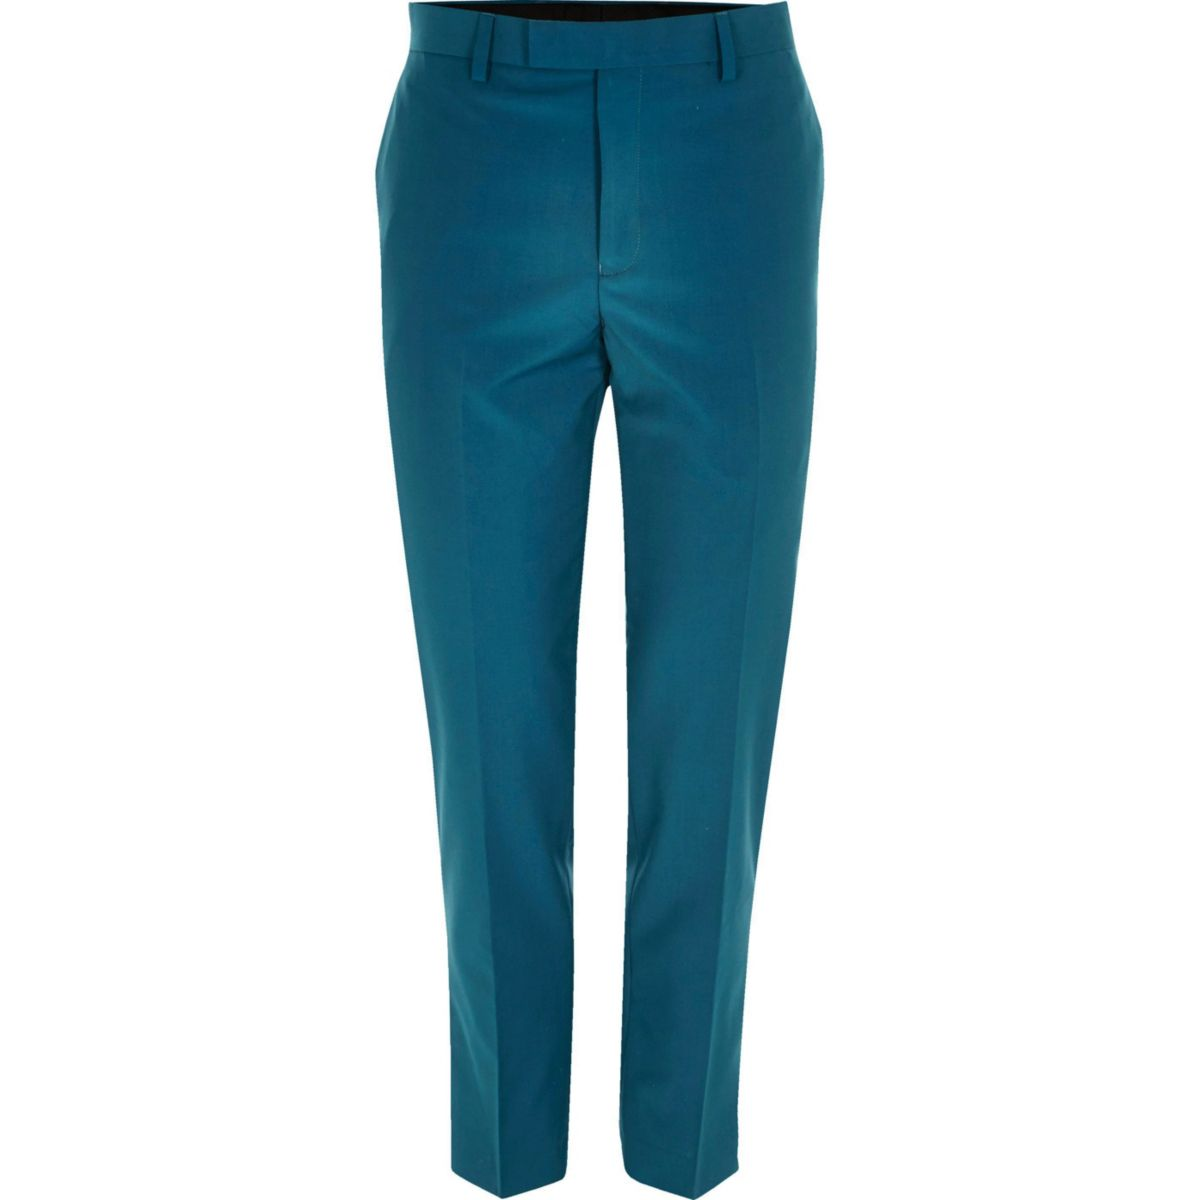 Teal blue skinny fit suit pants